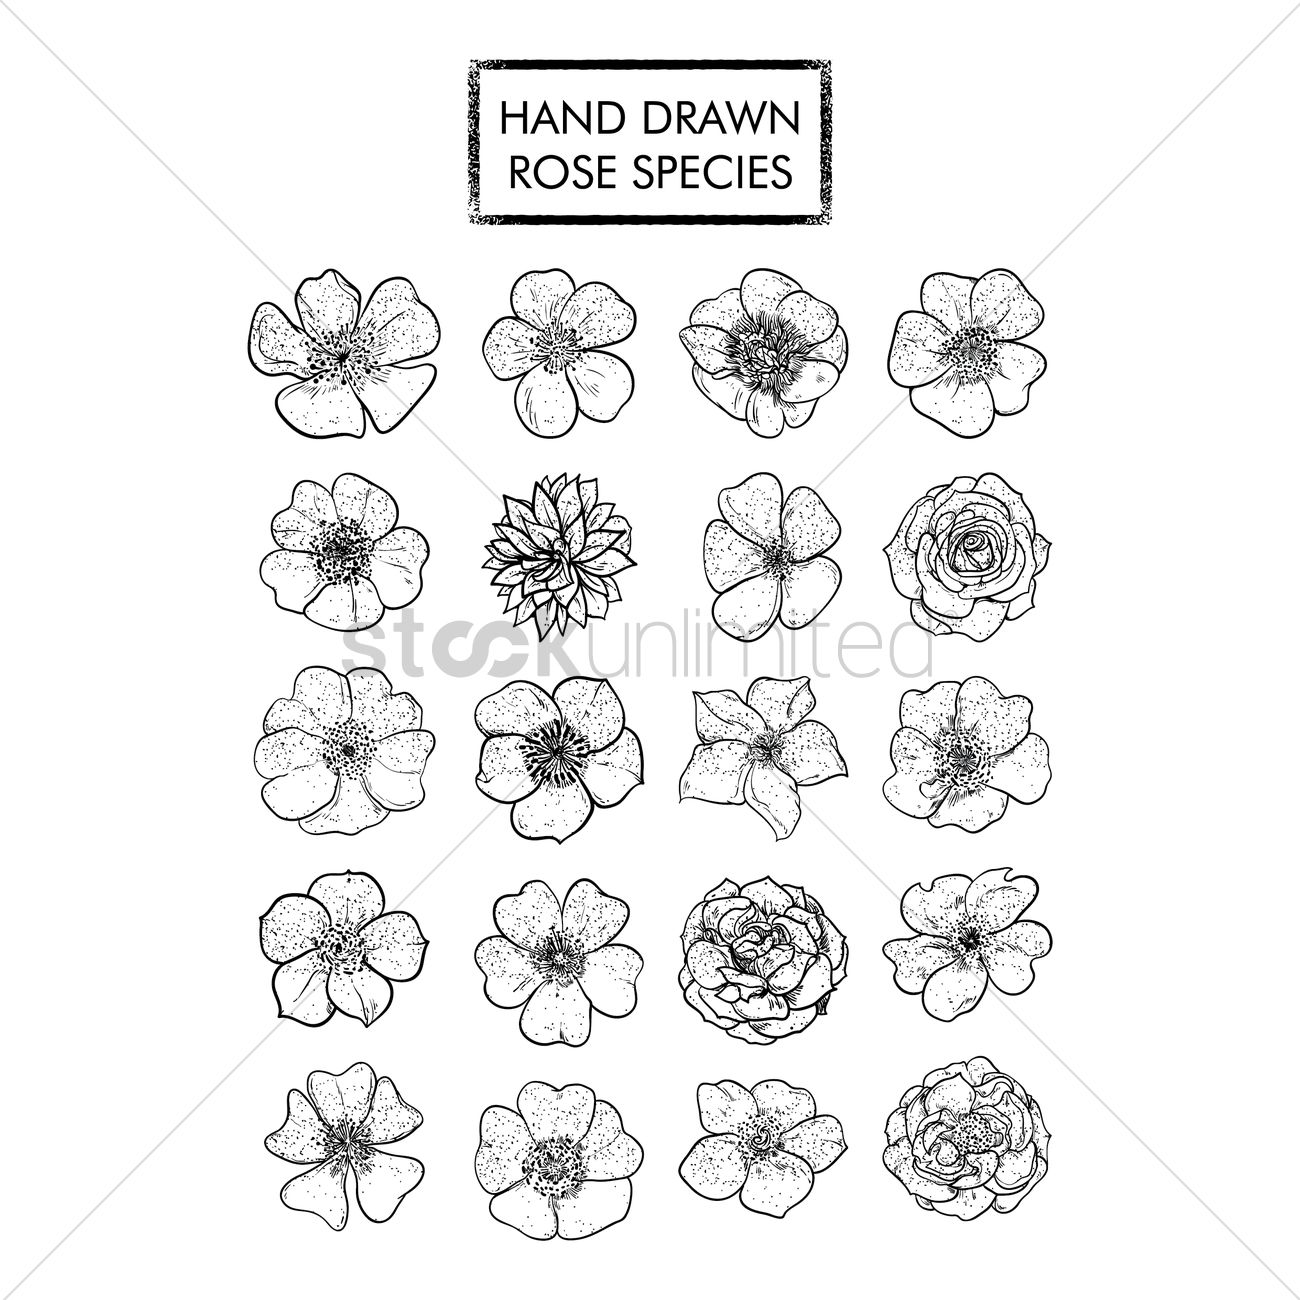 hand drawn rose species collection vector image 1529757